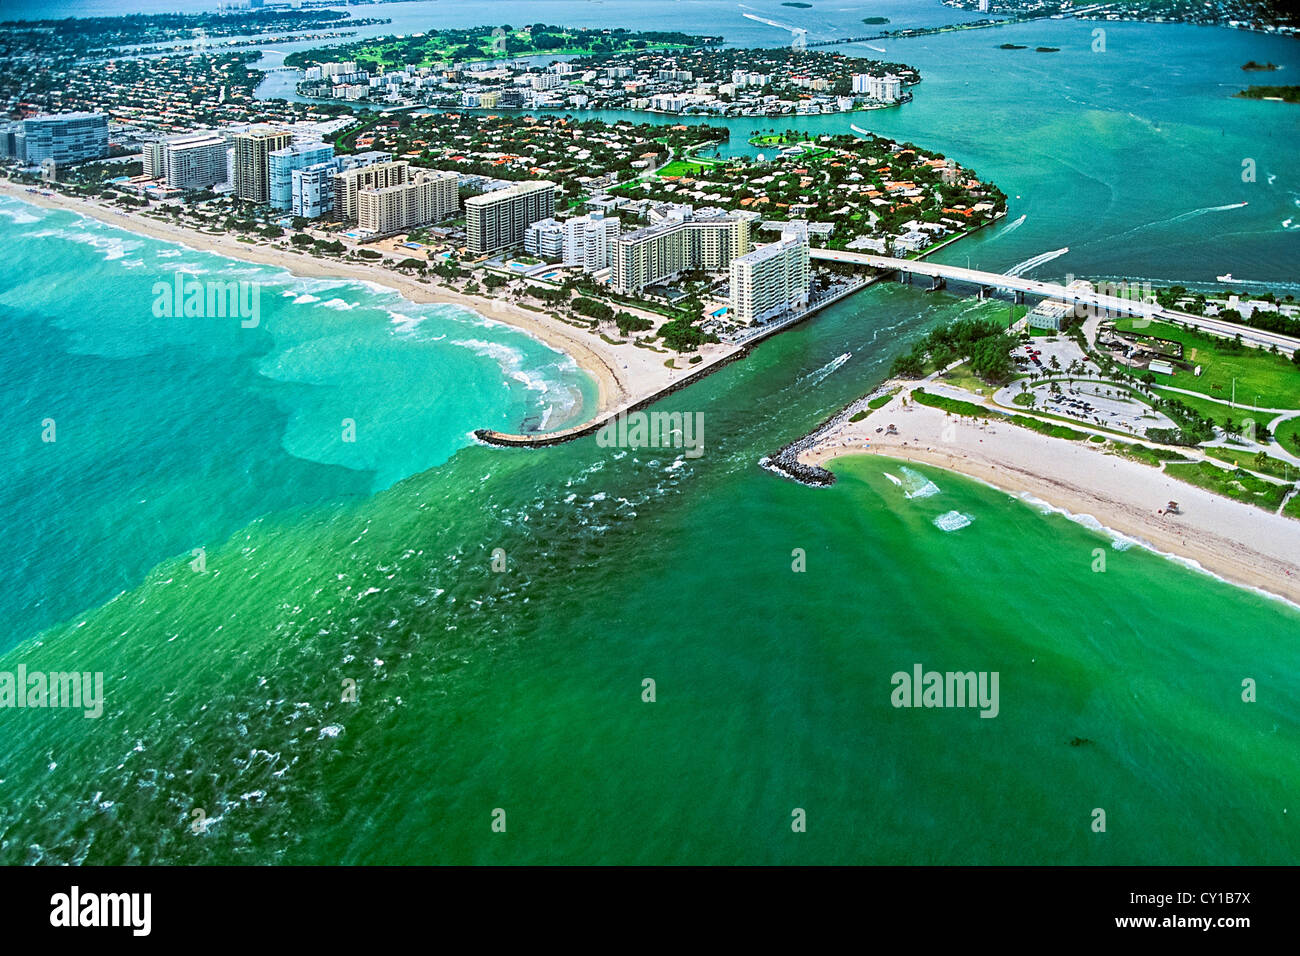 Aerial View of Miami Beach Bal Harbour, Biscayne Bay, Florida, USA - Stock Image